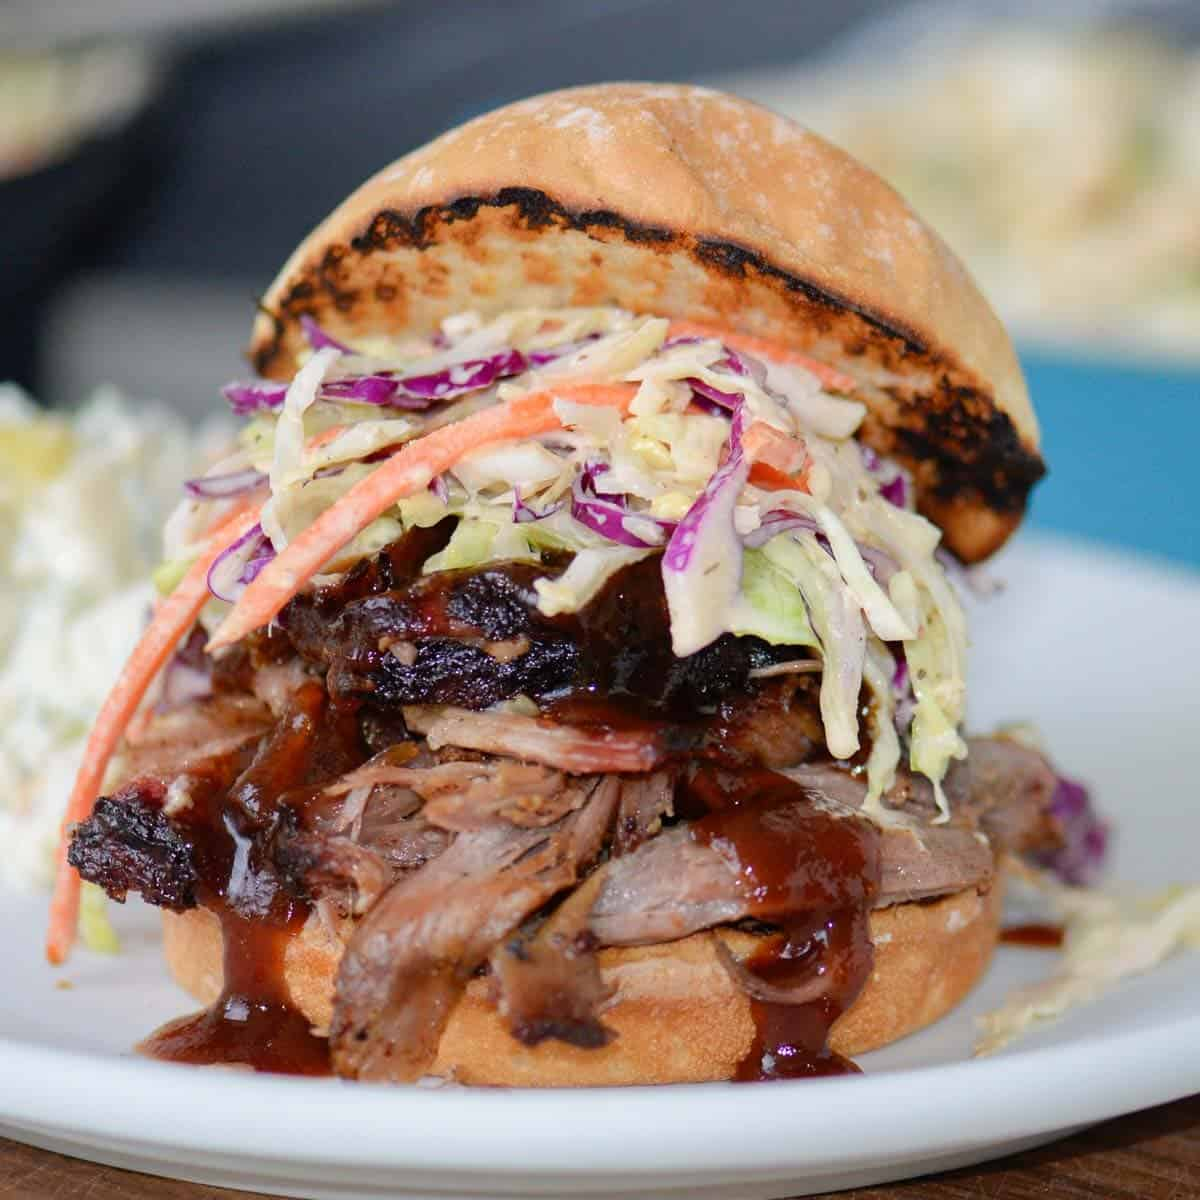 pulle pork sandwich with bbq sauce and coleslaw